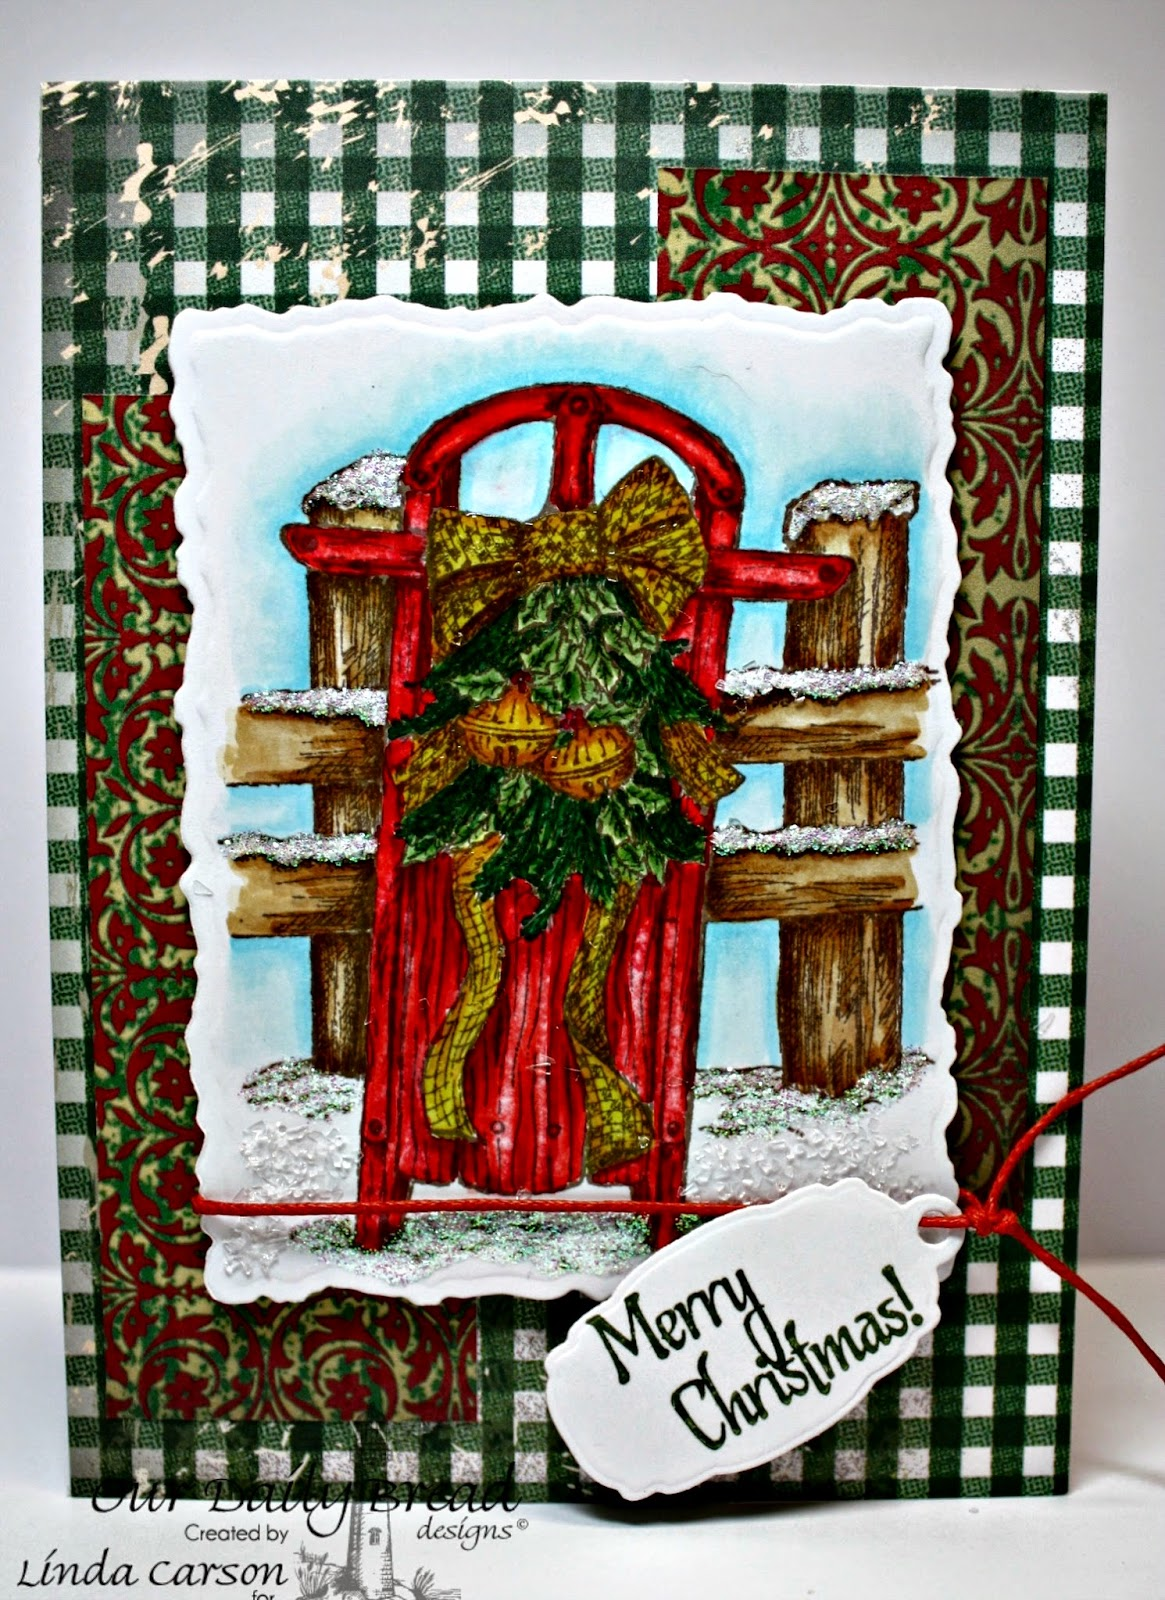 Our Daily Bread Designs, Let It Snow, His Birth, Mini Tag dies, Christmas Collection 2013, designer Linda Carson